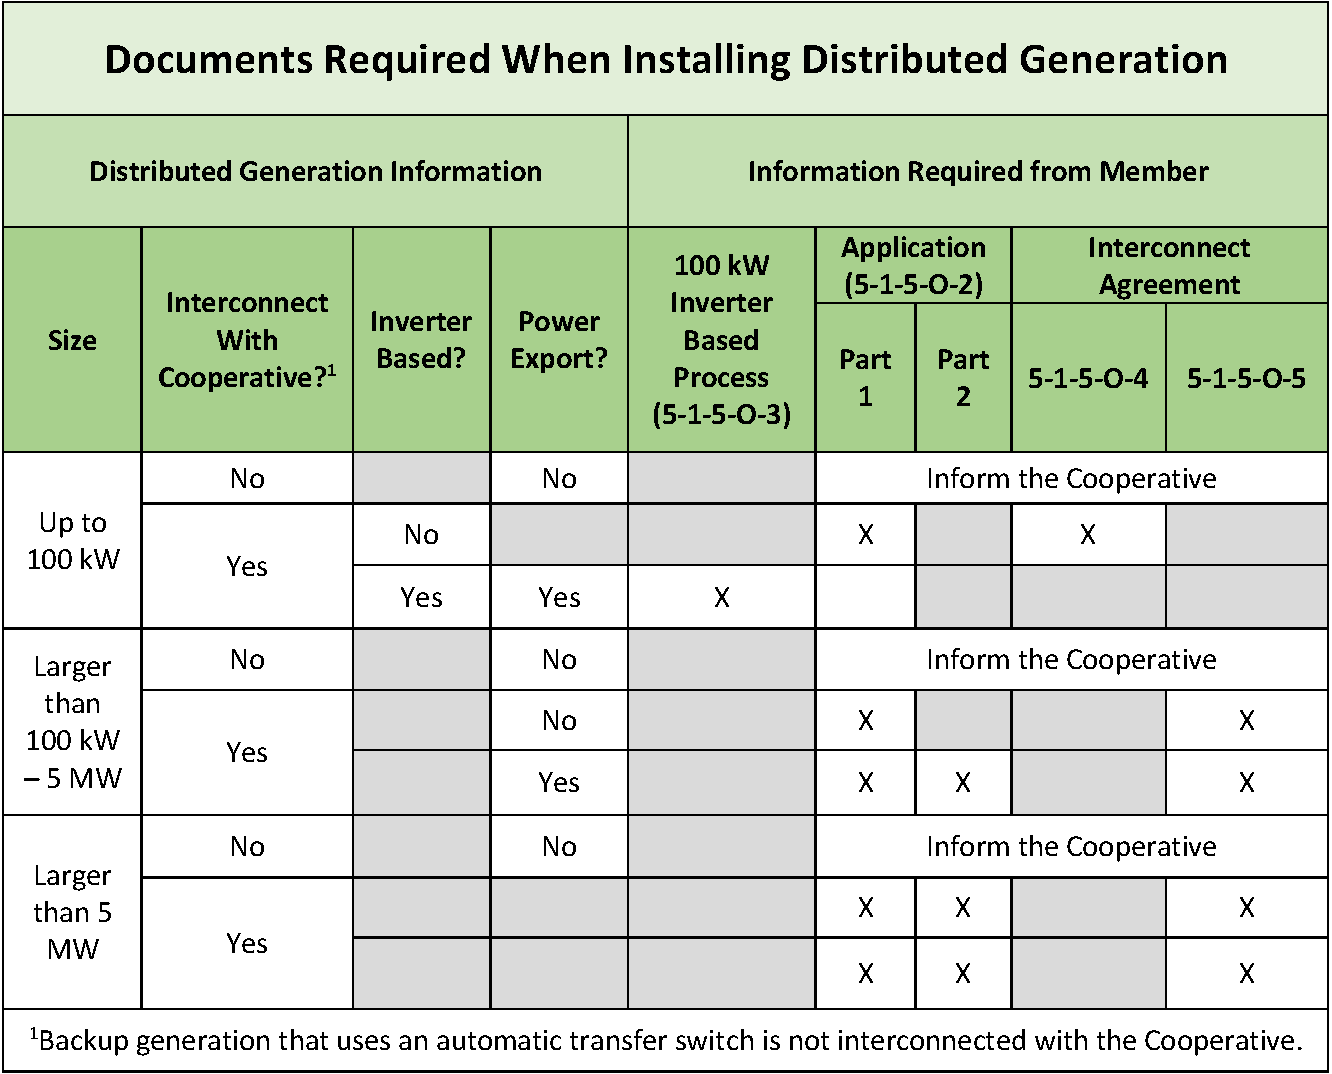 Documents Required When Installing Distributed Generation